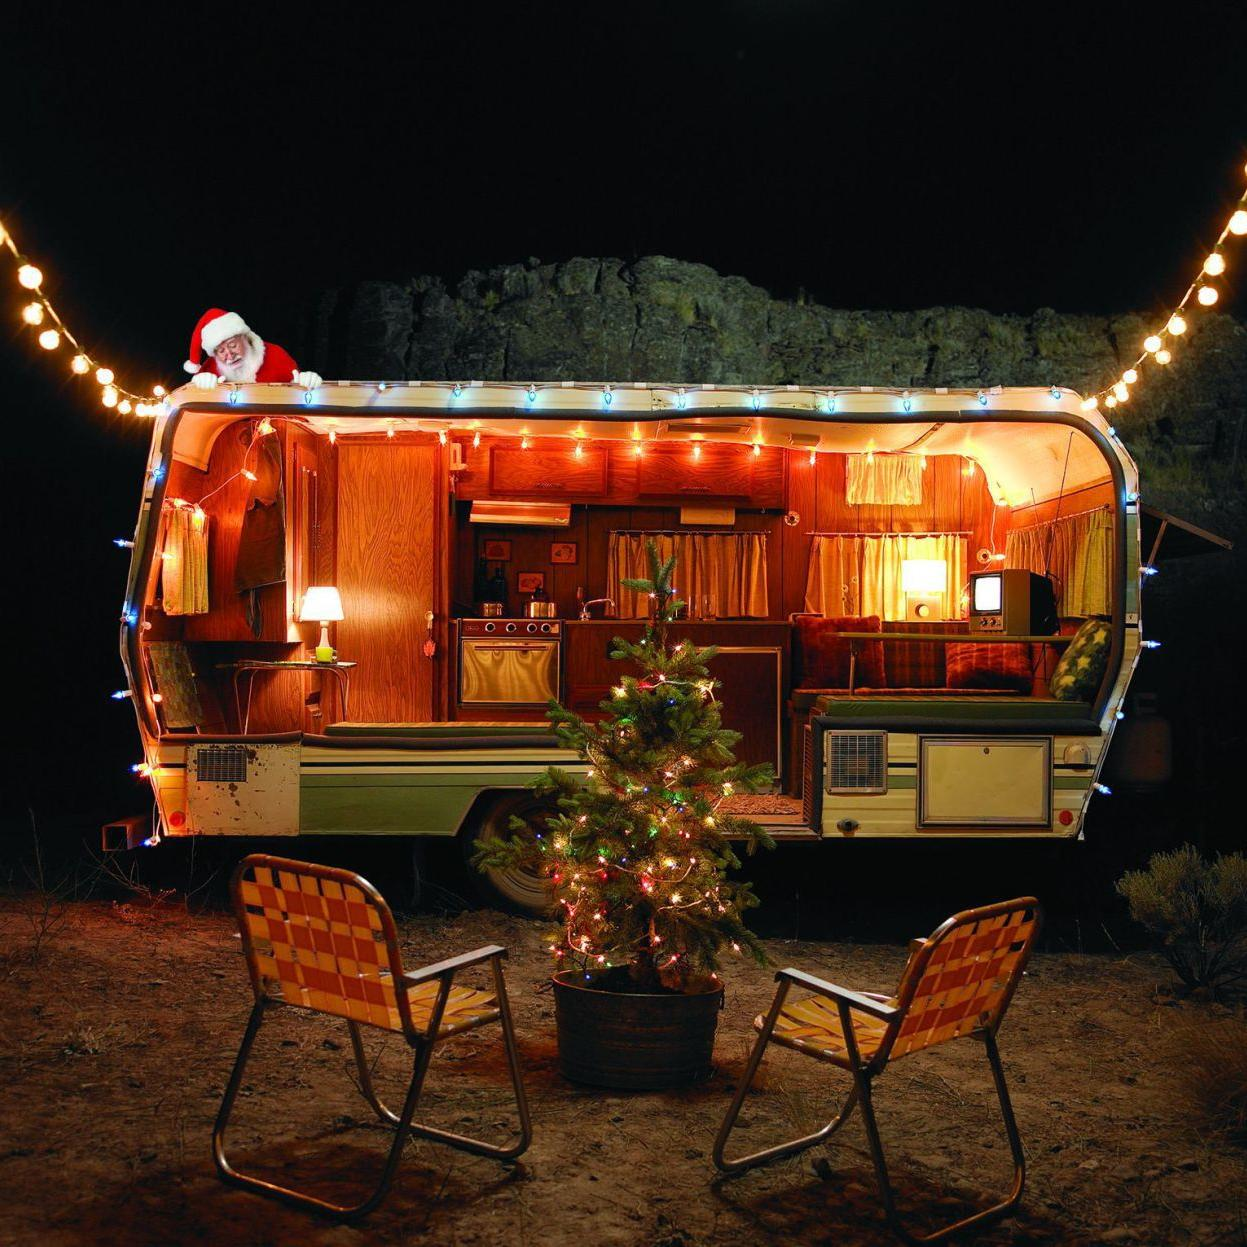 Christmas In July Camping.Camping At Christmas In July Daily Journal News